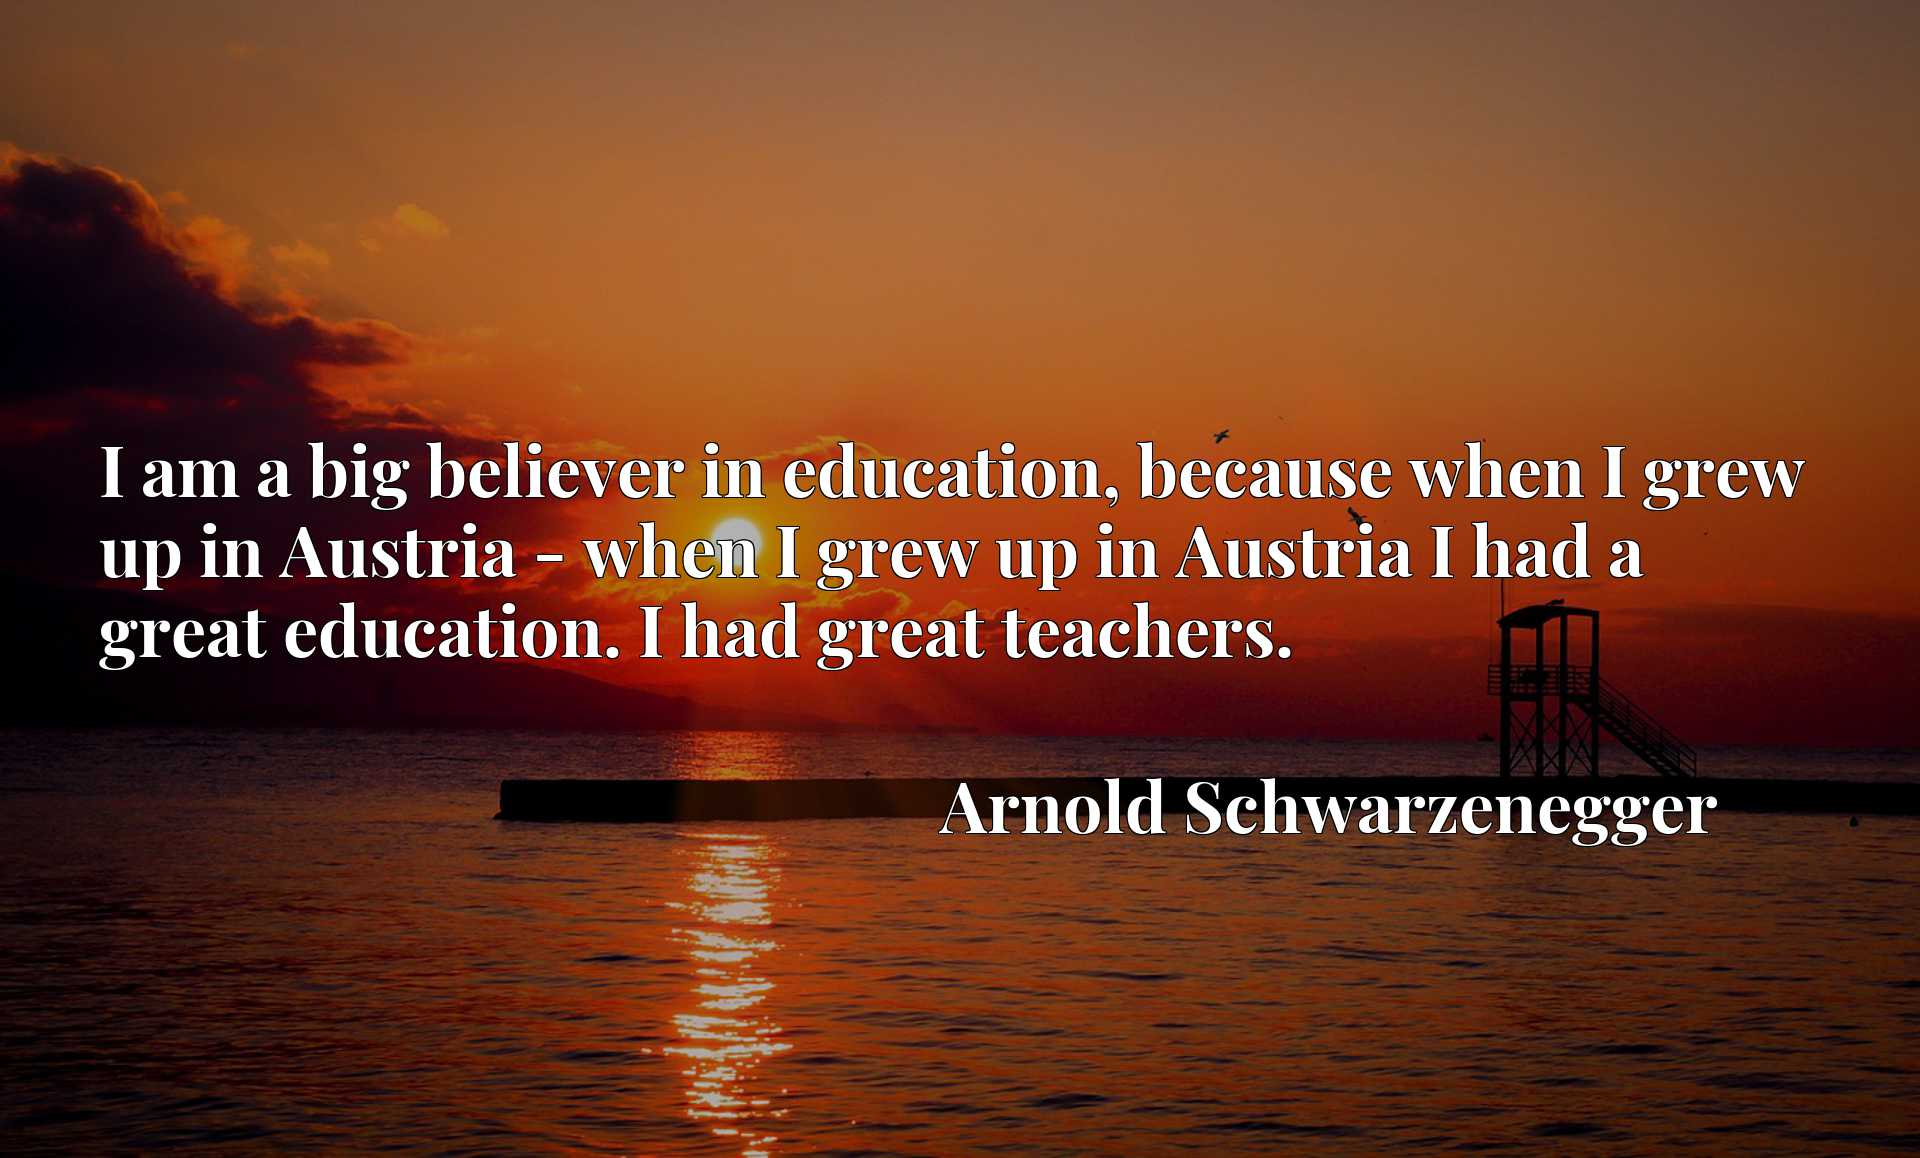 I am a big believer in education, because when I grew up in Austria - when I grew up in Austria I had a great education. I had great teachers.